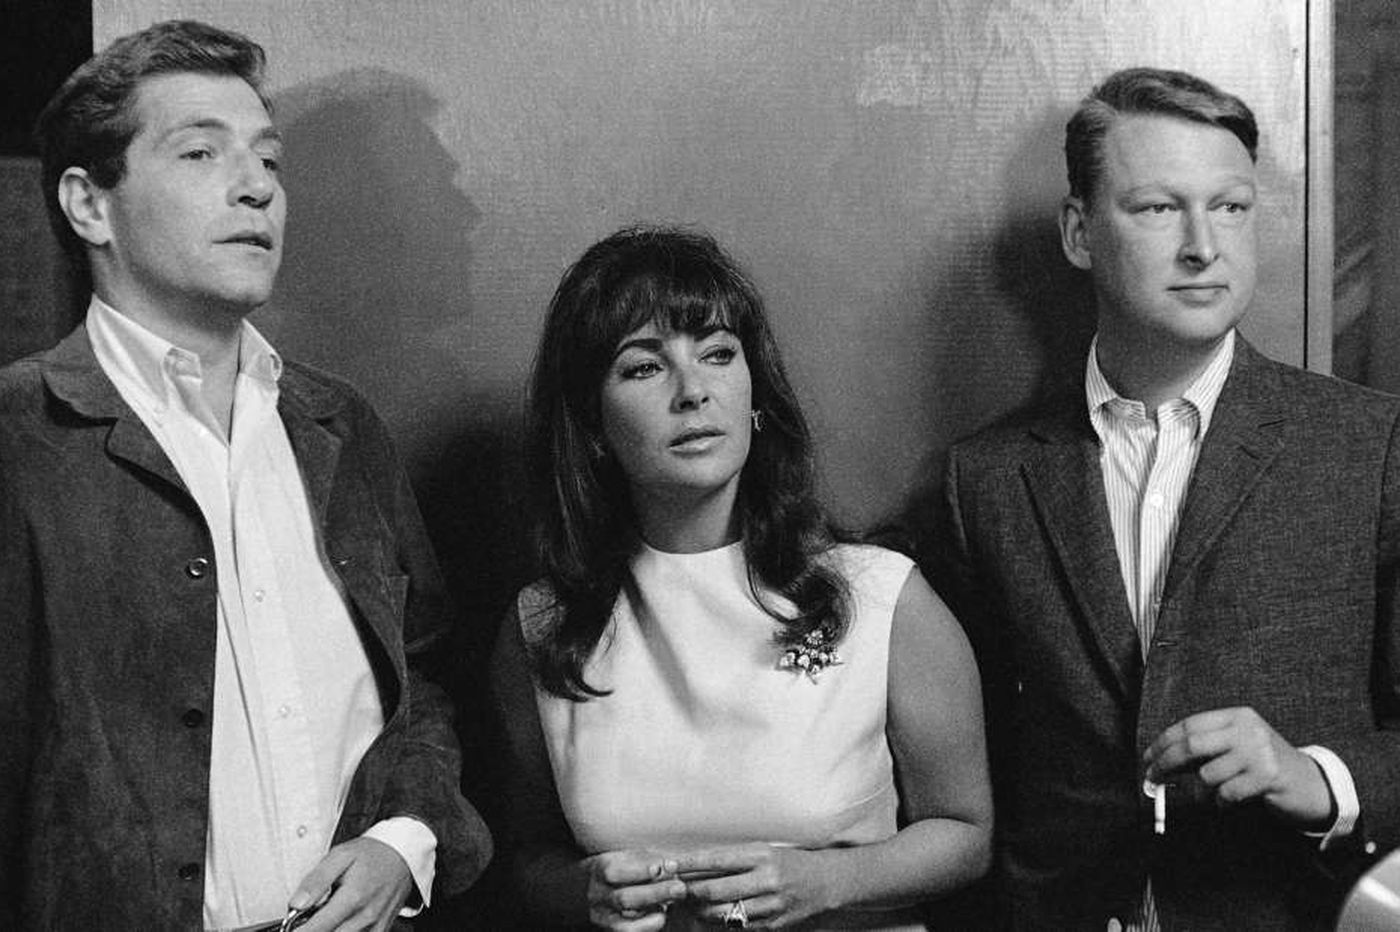 Mike Nichols, 83, director of film, TV,and stage